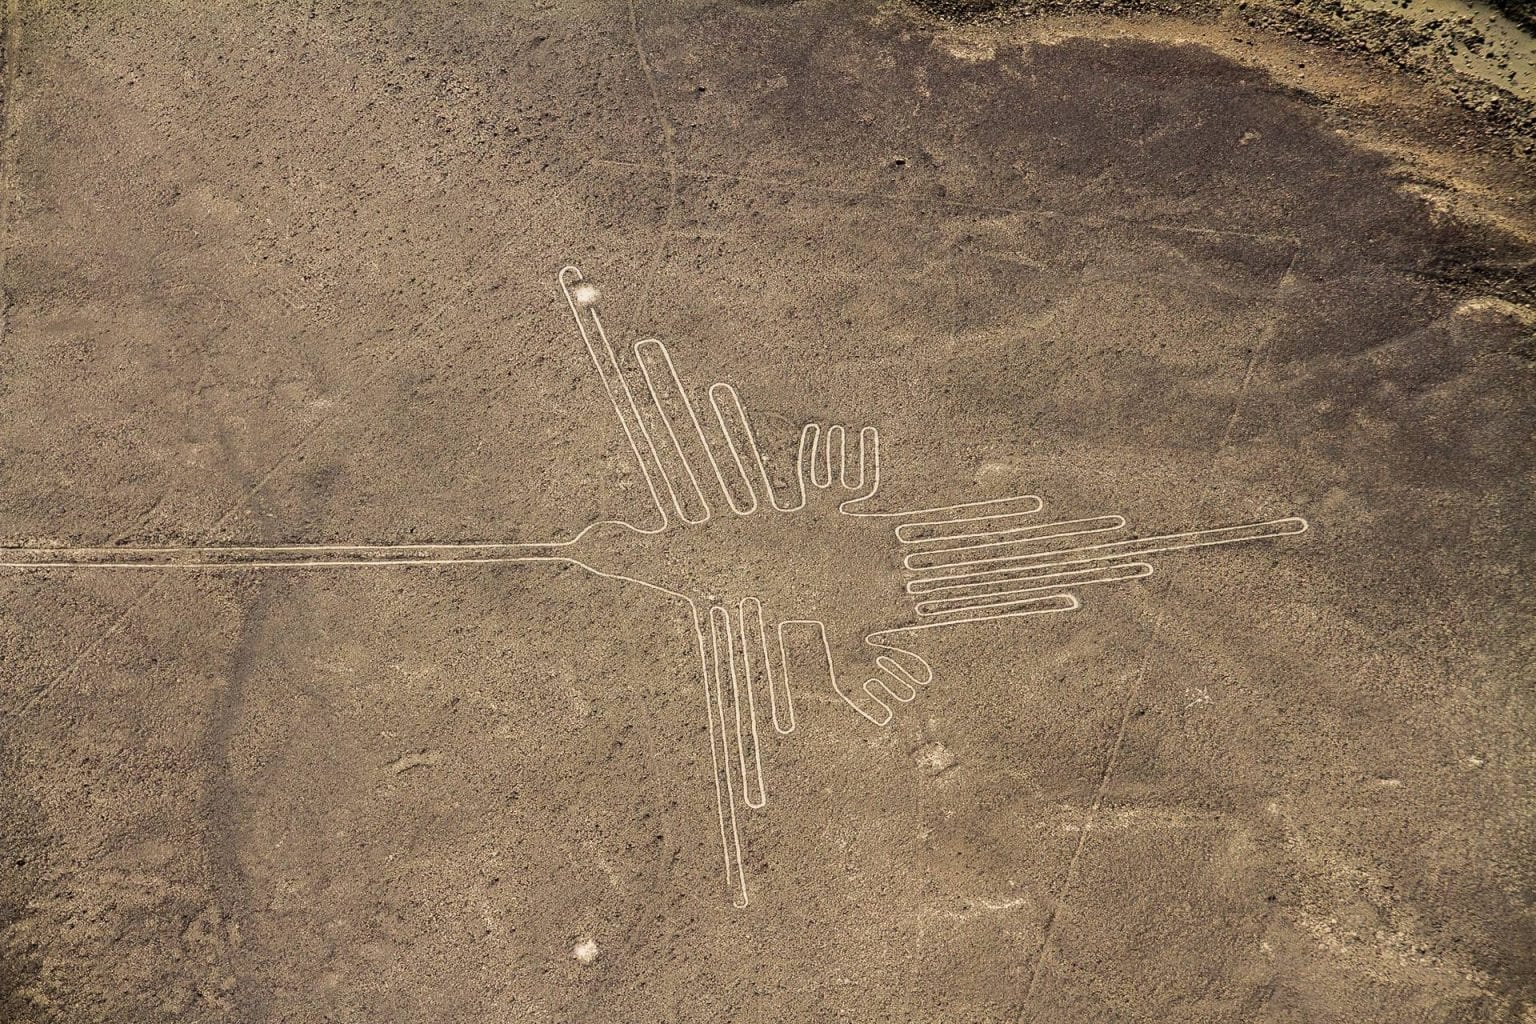 One of the most famous Nazca geoglyphs, believed to be an illustration of a hummingbird. Credit: Shutterstock